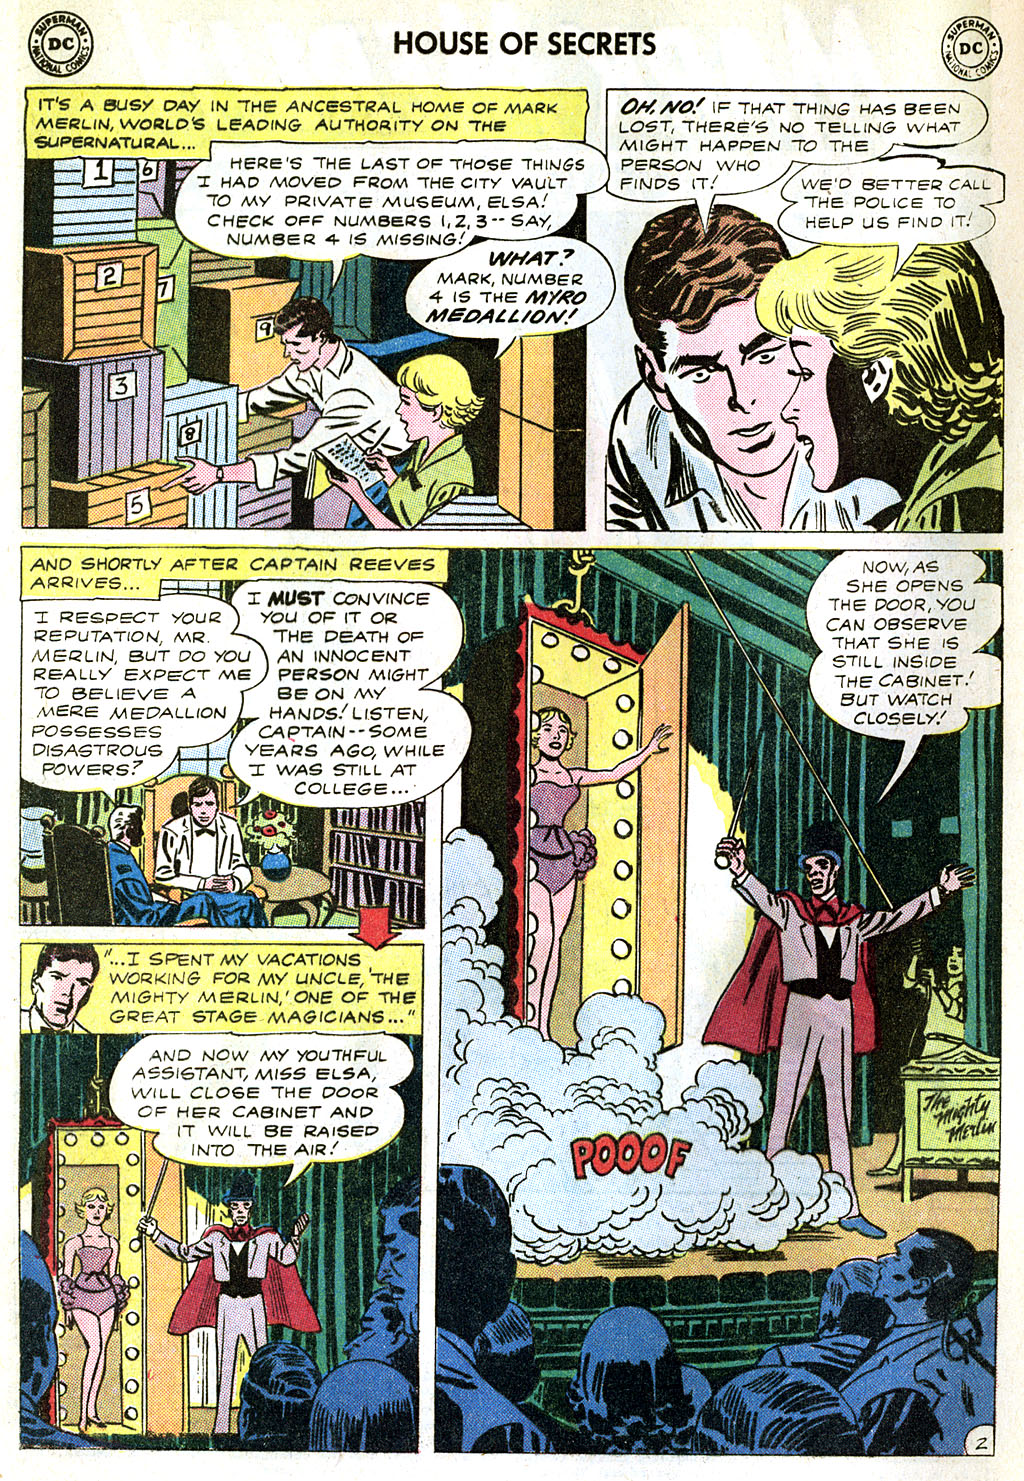 House of Secrets (1956) issue 58 - Page 4